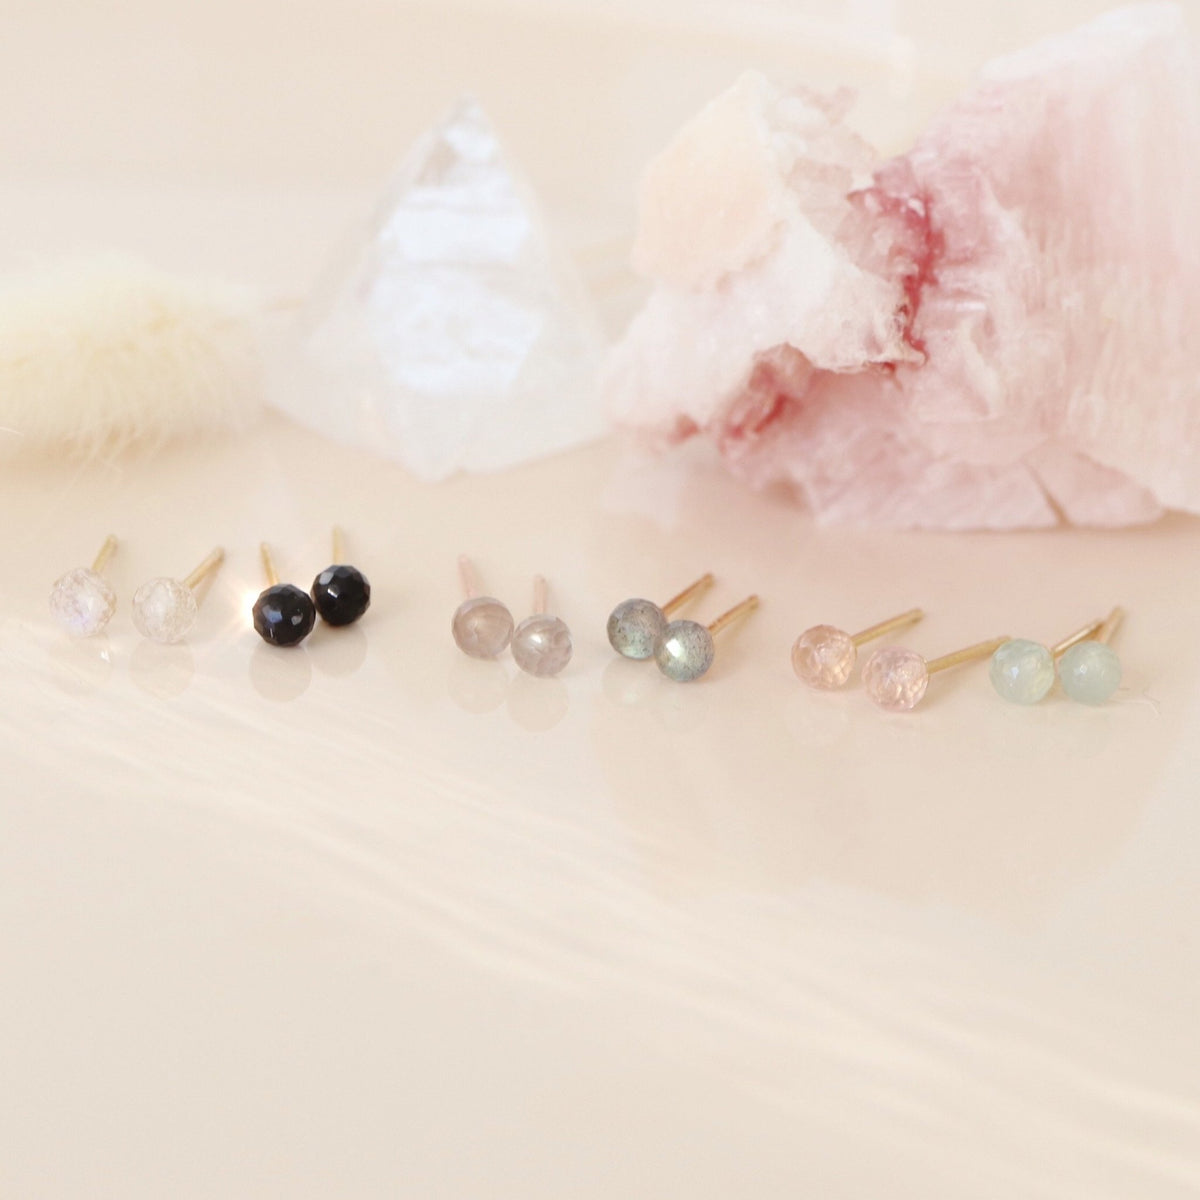 TINY PROTECT STUD EARRINGS - GREY MOONSTONE & ROSE GOLD - SO PRETTY CARA COTTER